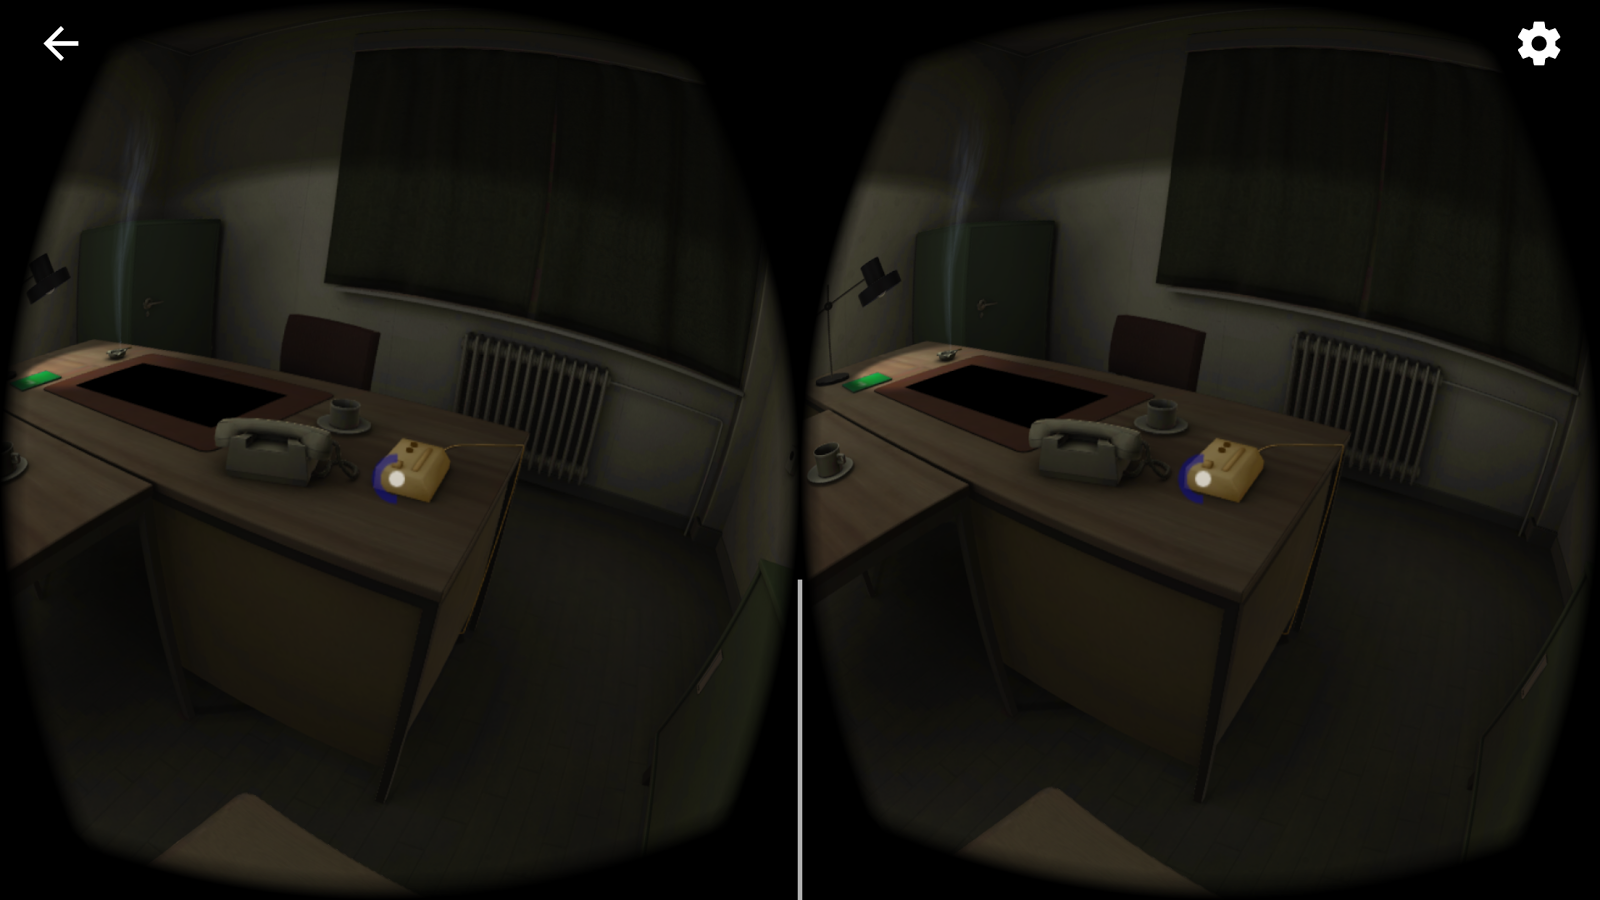 Stasi Verhöre in VR- screenshot